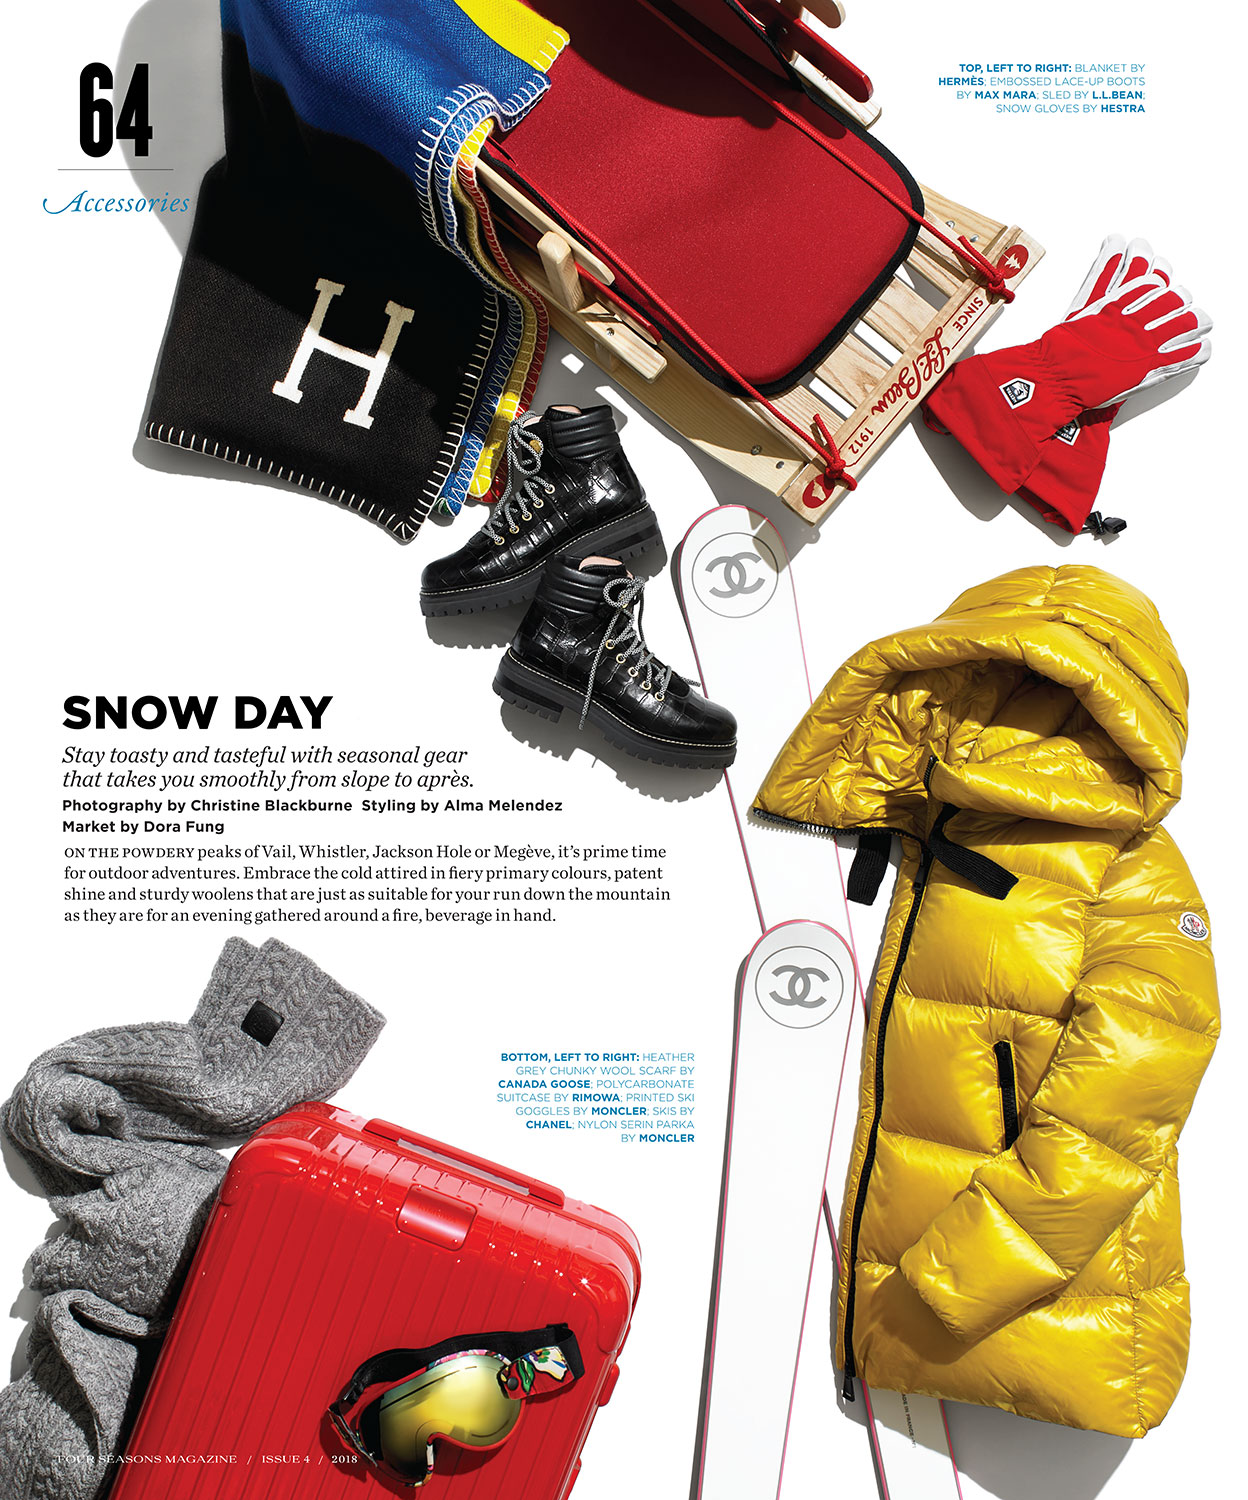 0418_ESSENTIALS_SkiGear